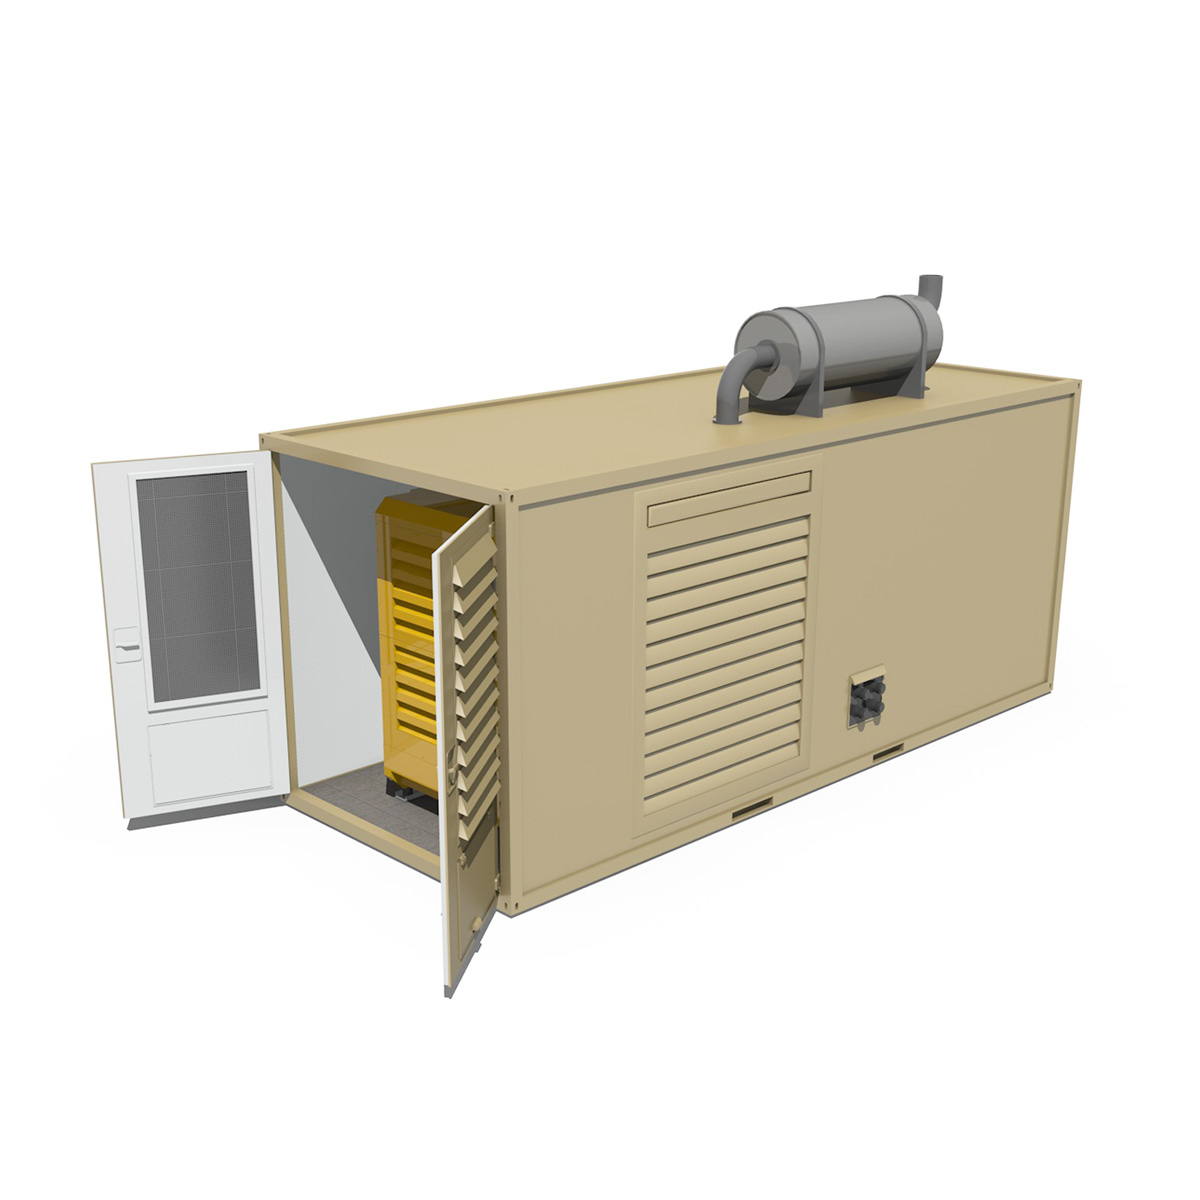 20ft generator container version two 3d model 3ds c4d fbx lwo lw lws obj 264741